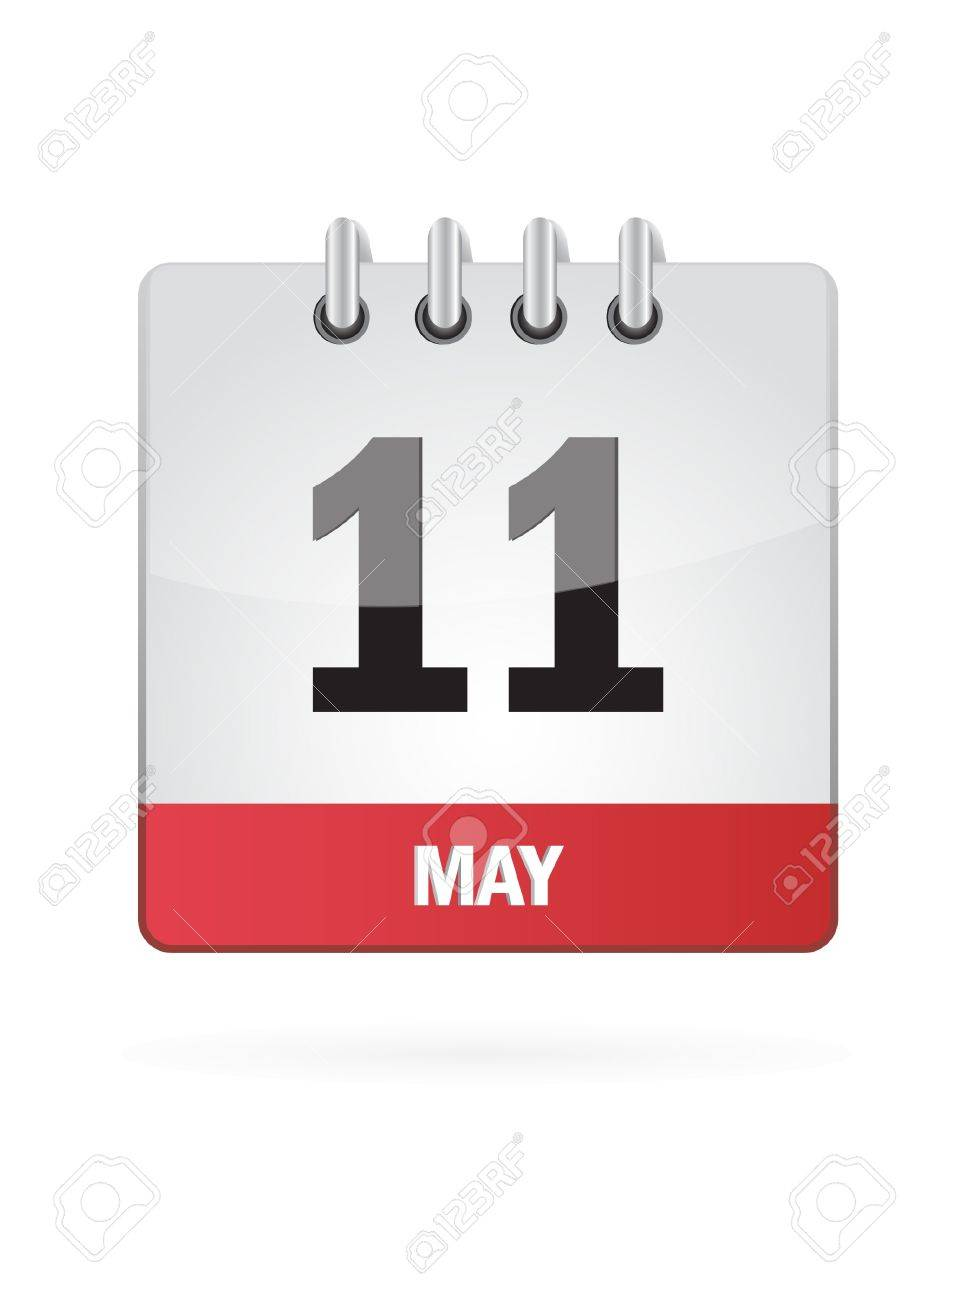 11 May Calendar Icon On White Background Stock Vector - 18392746